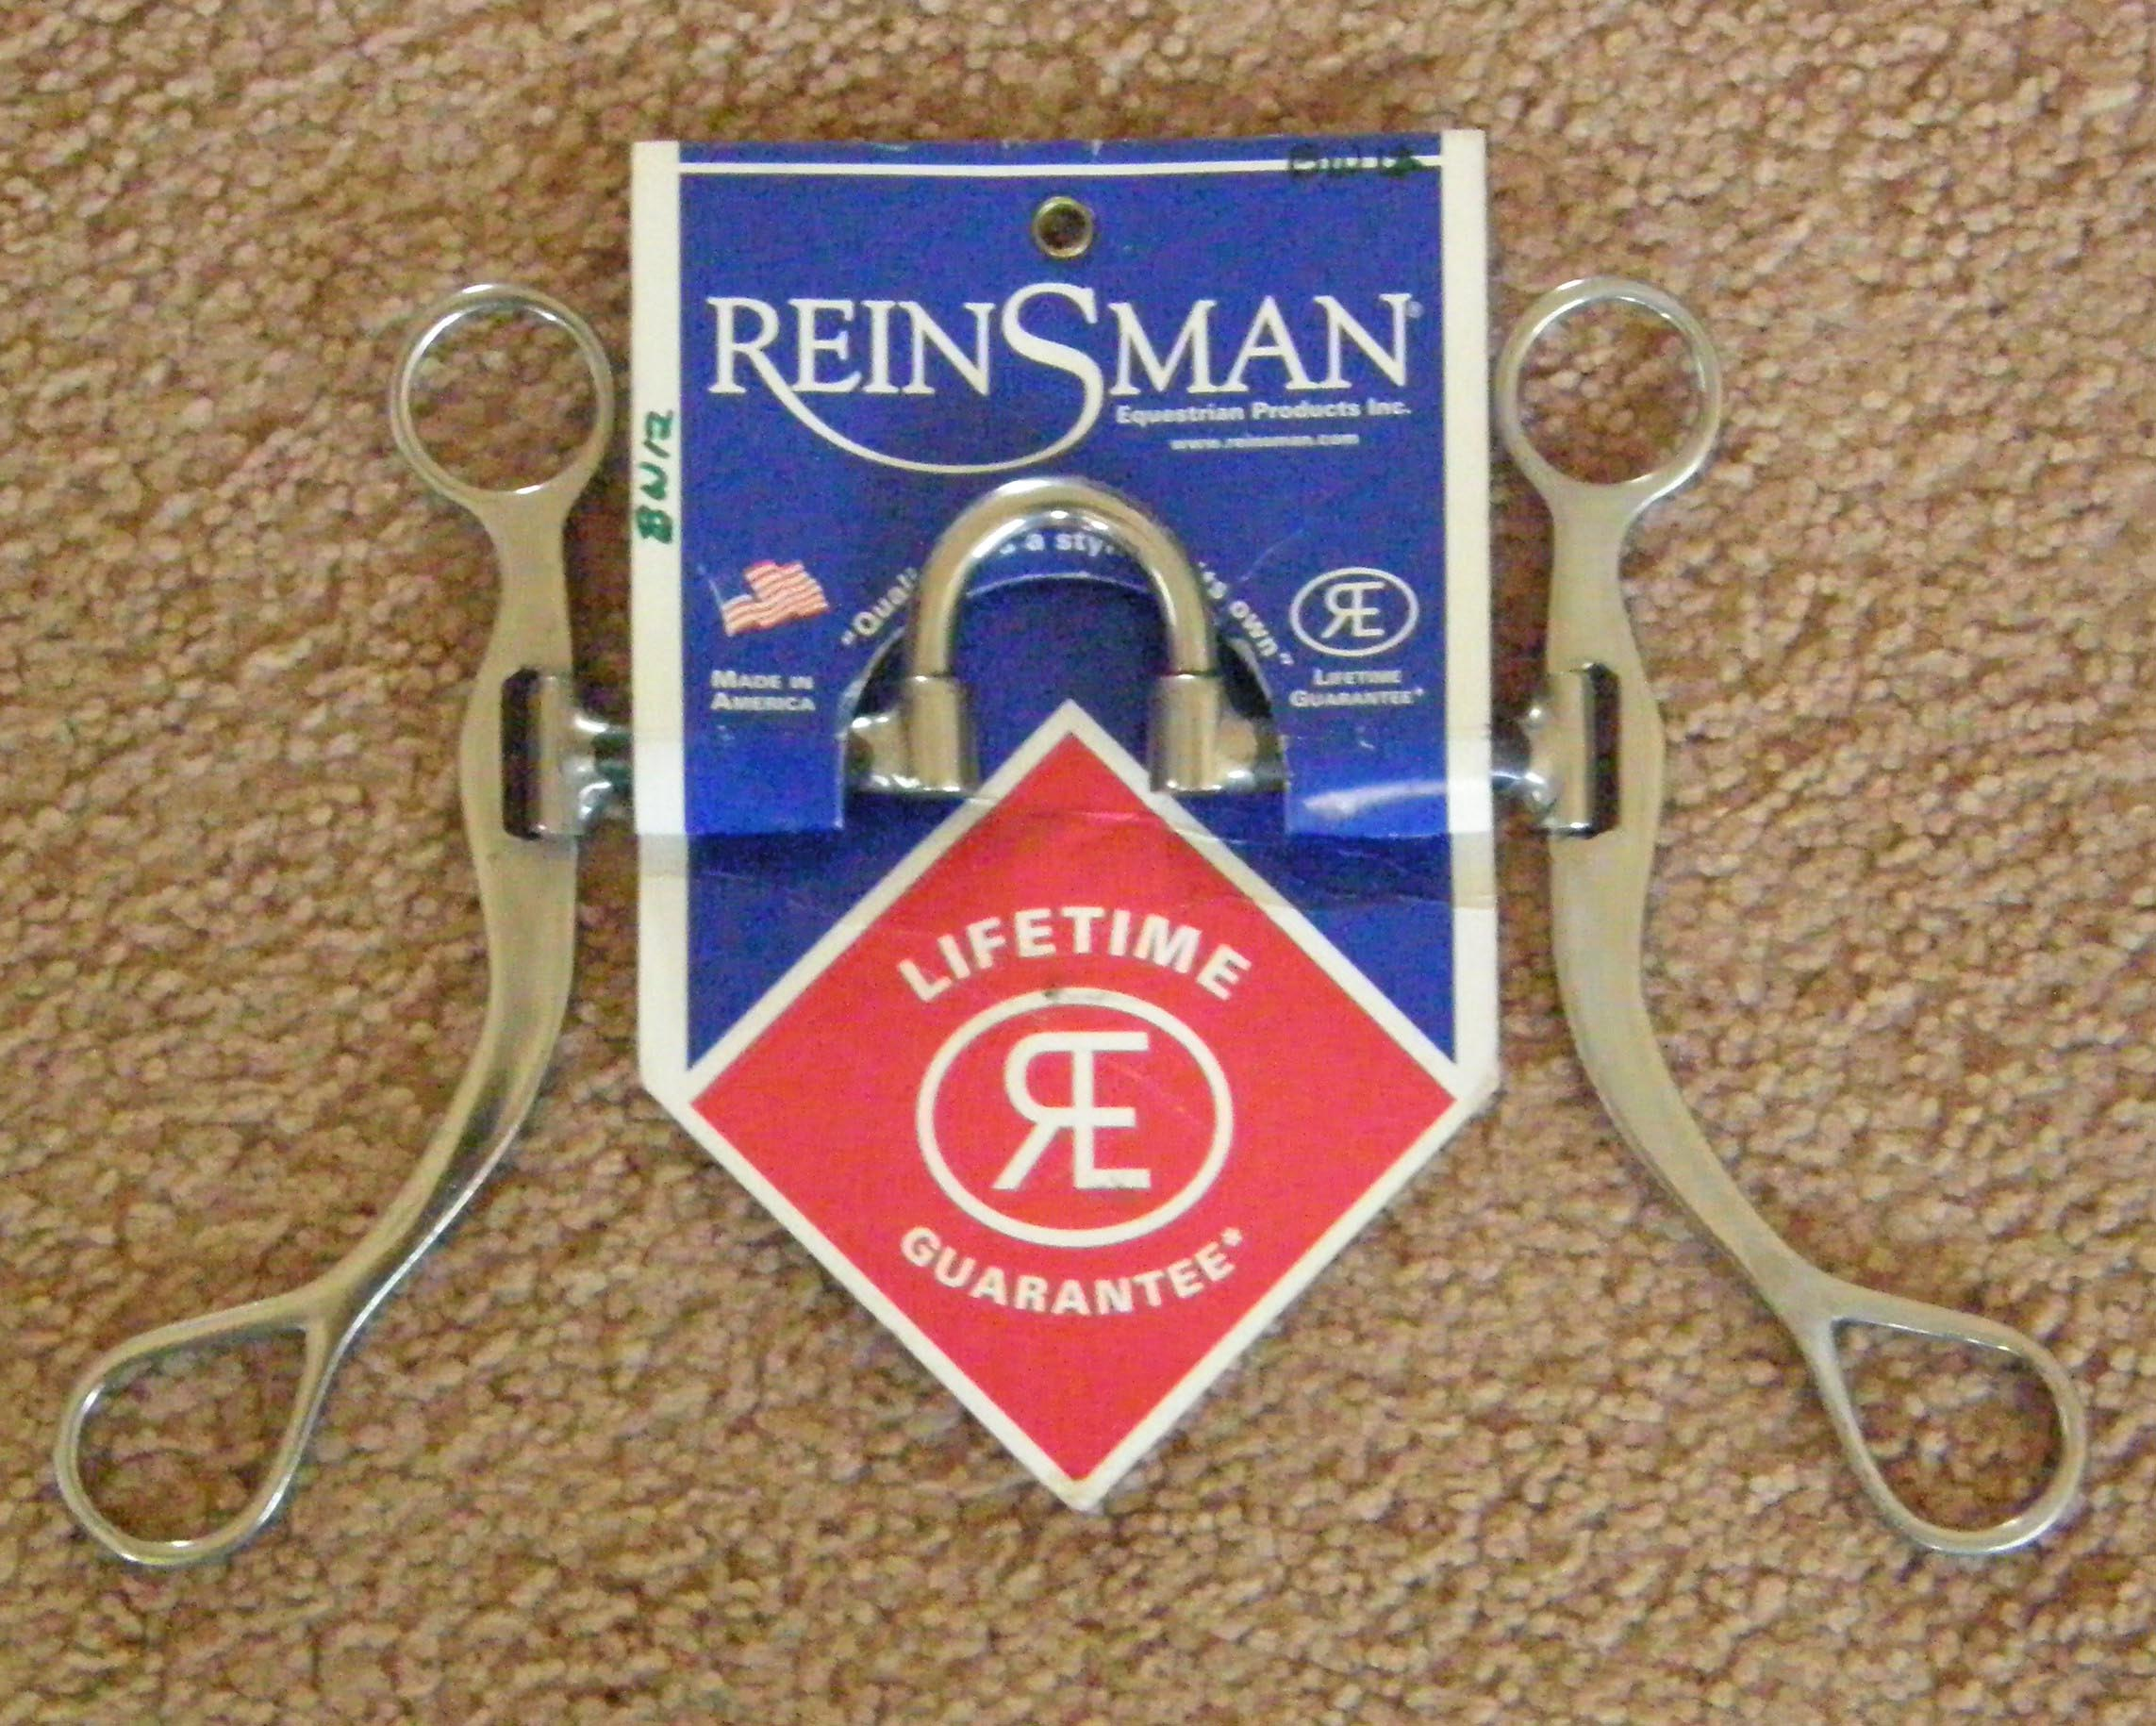 "Reinsman 5"" Medium Port Correction Bit Sweet Iron Steel Cutter Bit 3 pc Western Curb Bit"